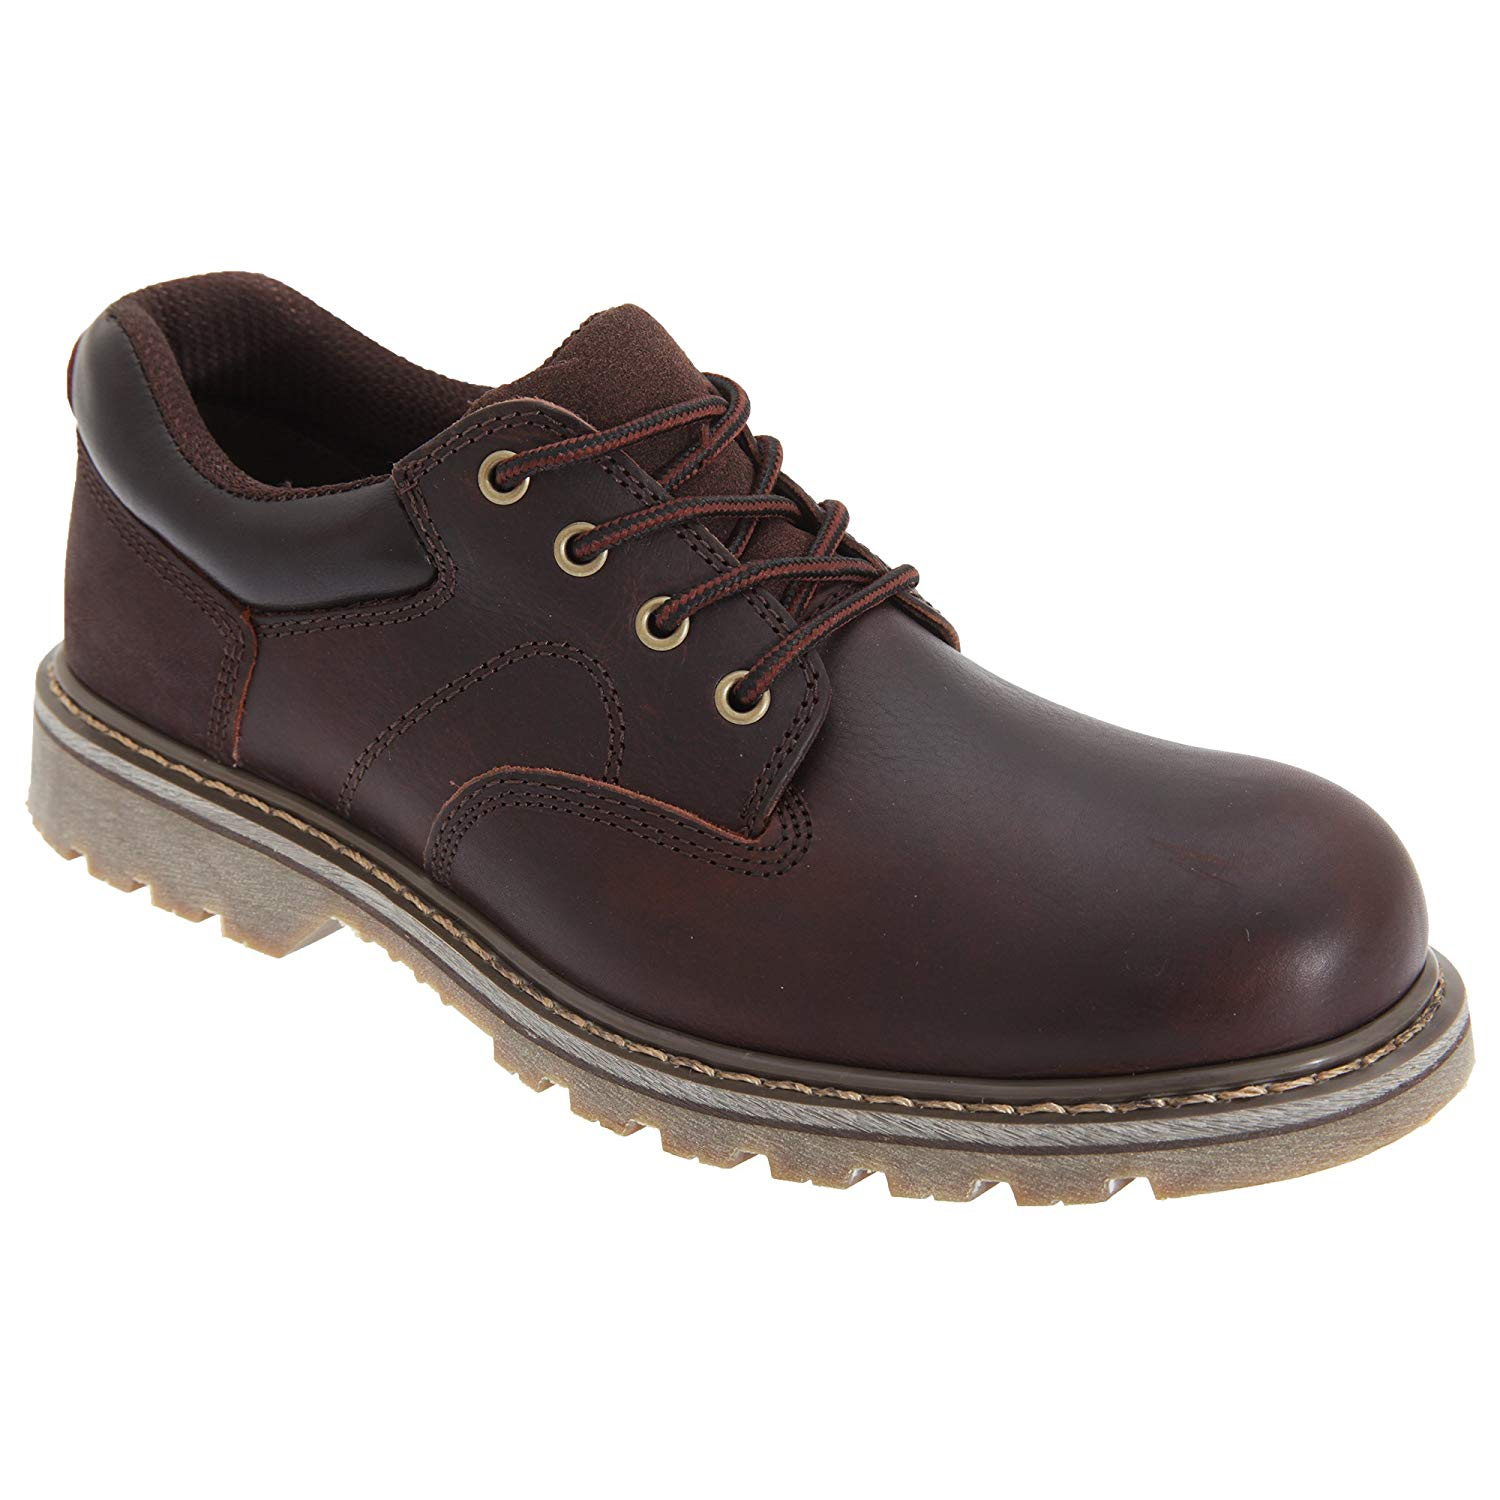 820a4cfd06b Get Quotations · Land of Wood Woodland Mens Tumbled Leather Padded Utility  Shoes